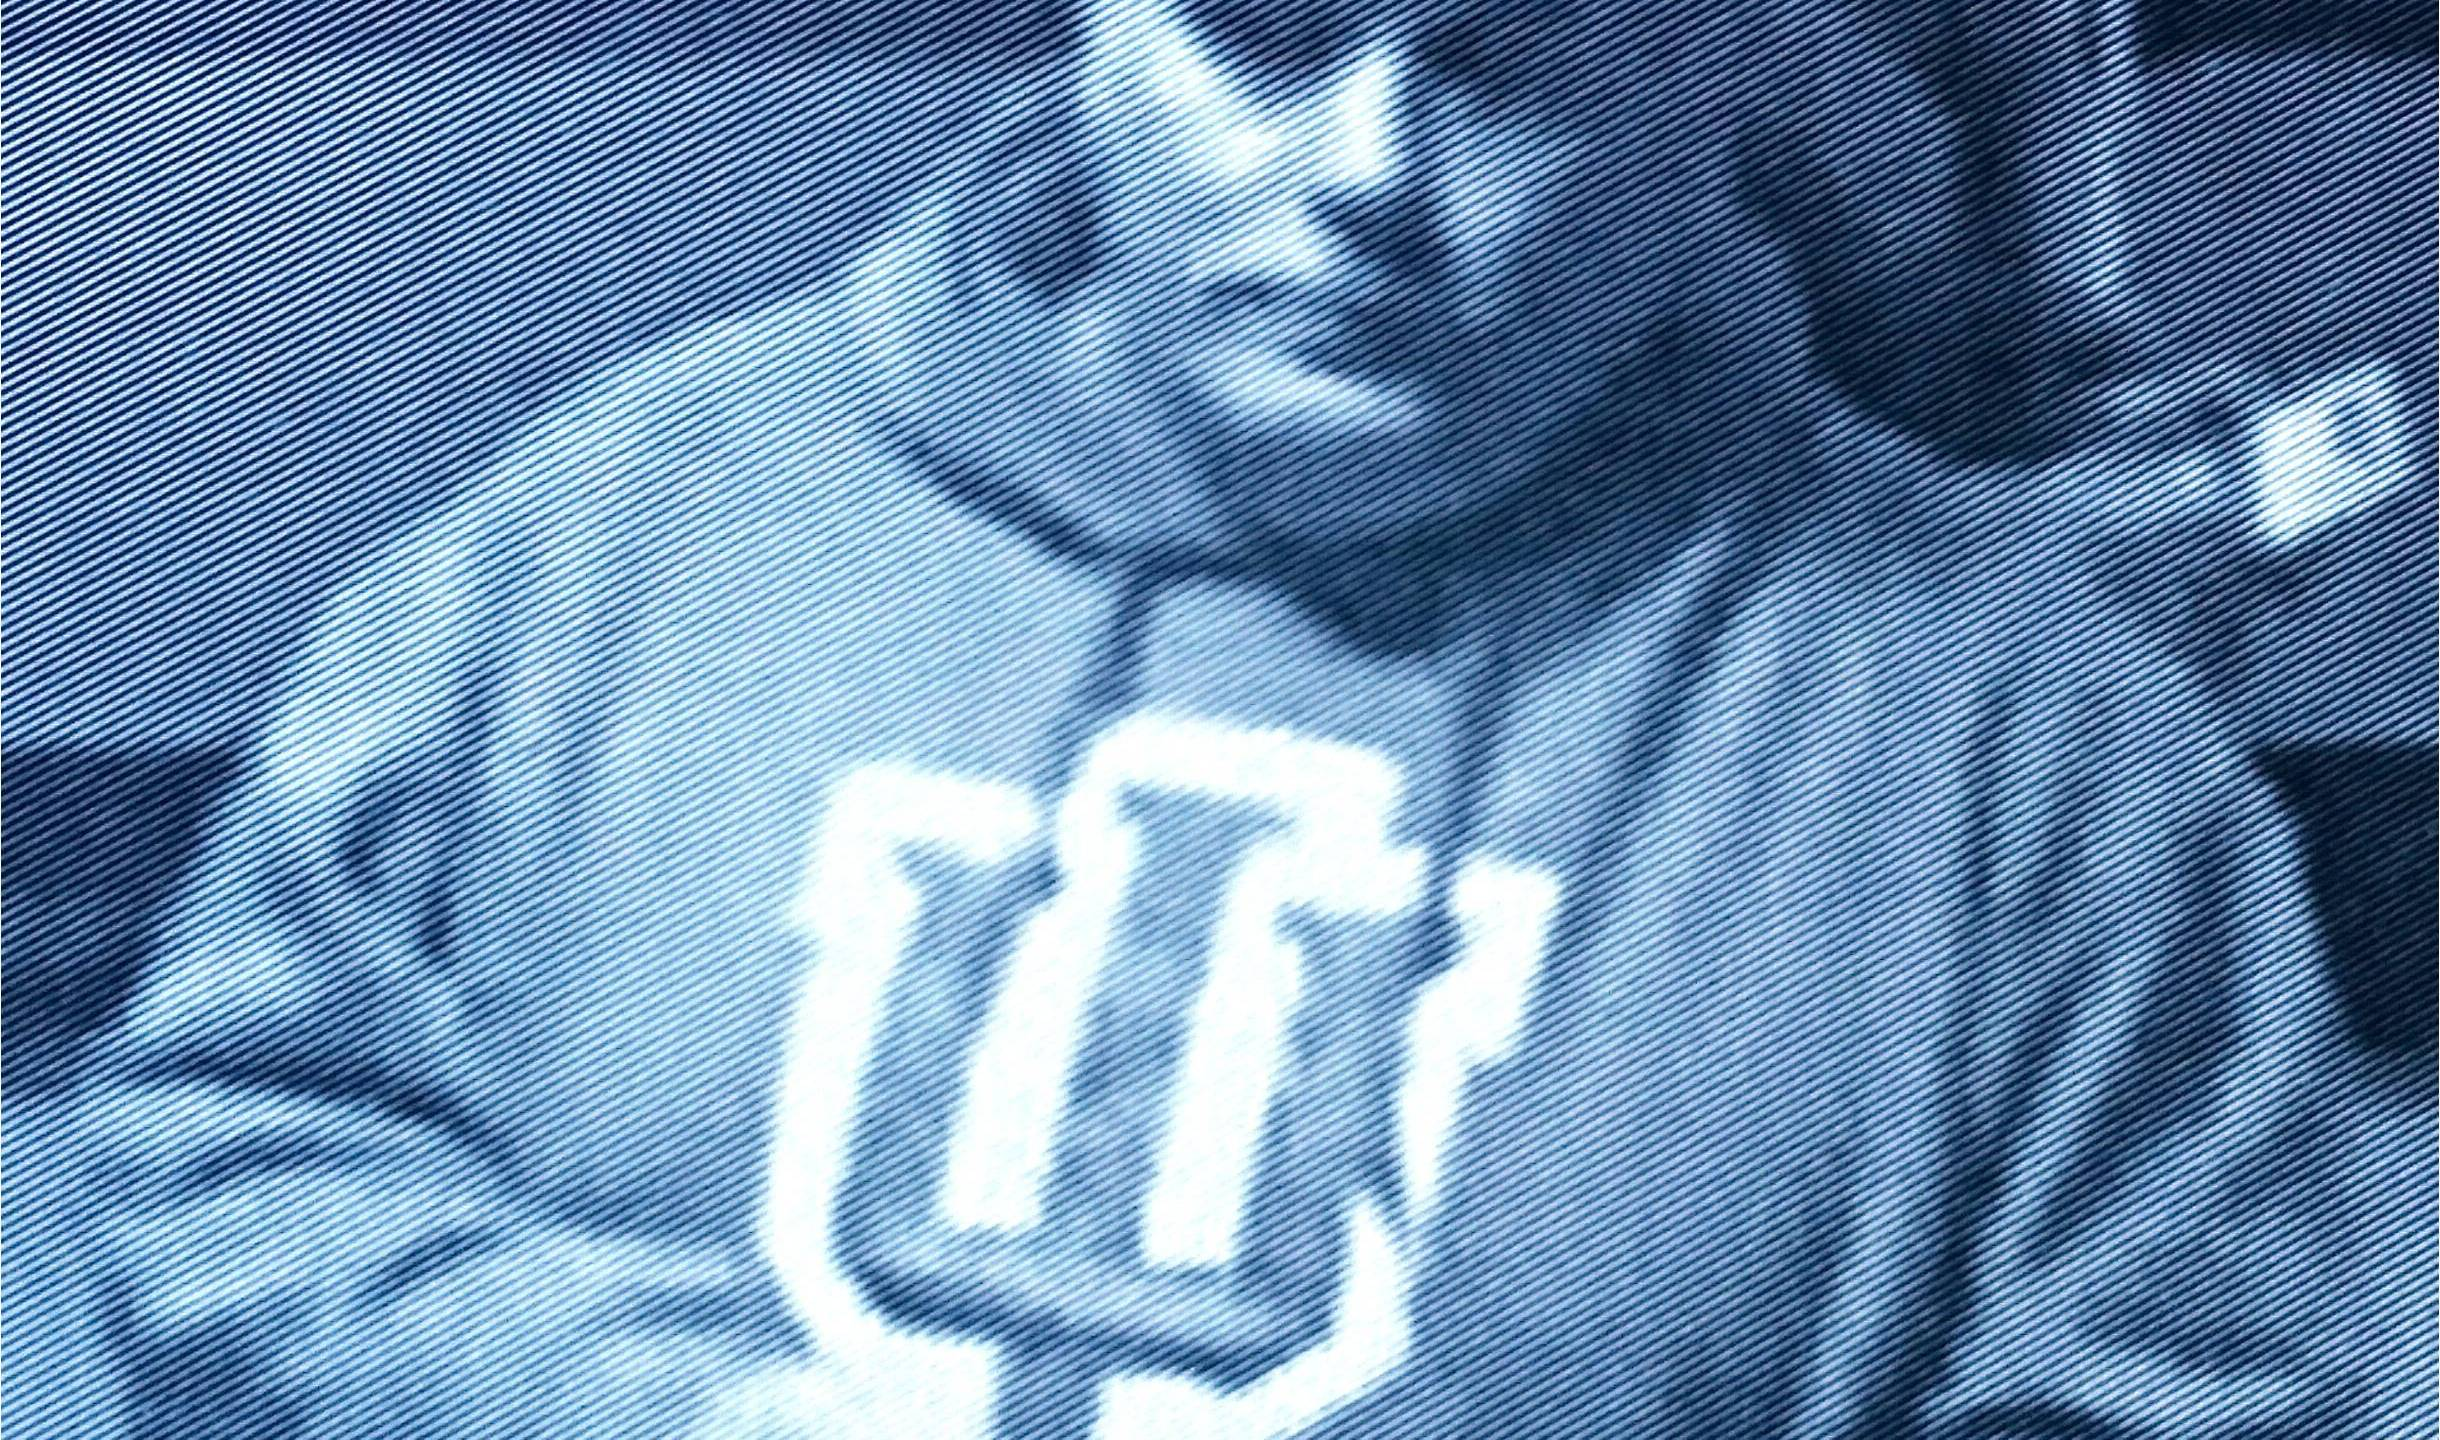 sf-bank-robbery-suspect-1_520790